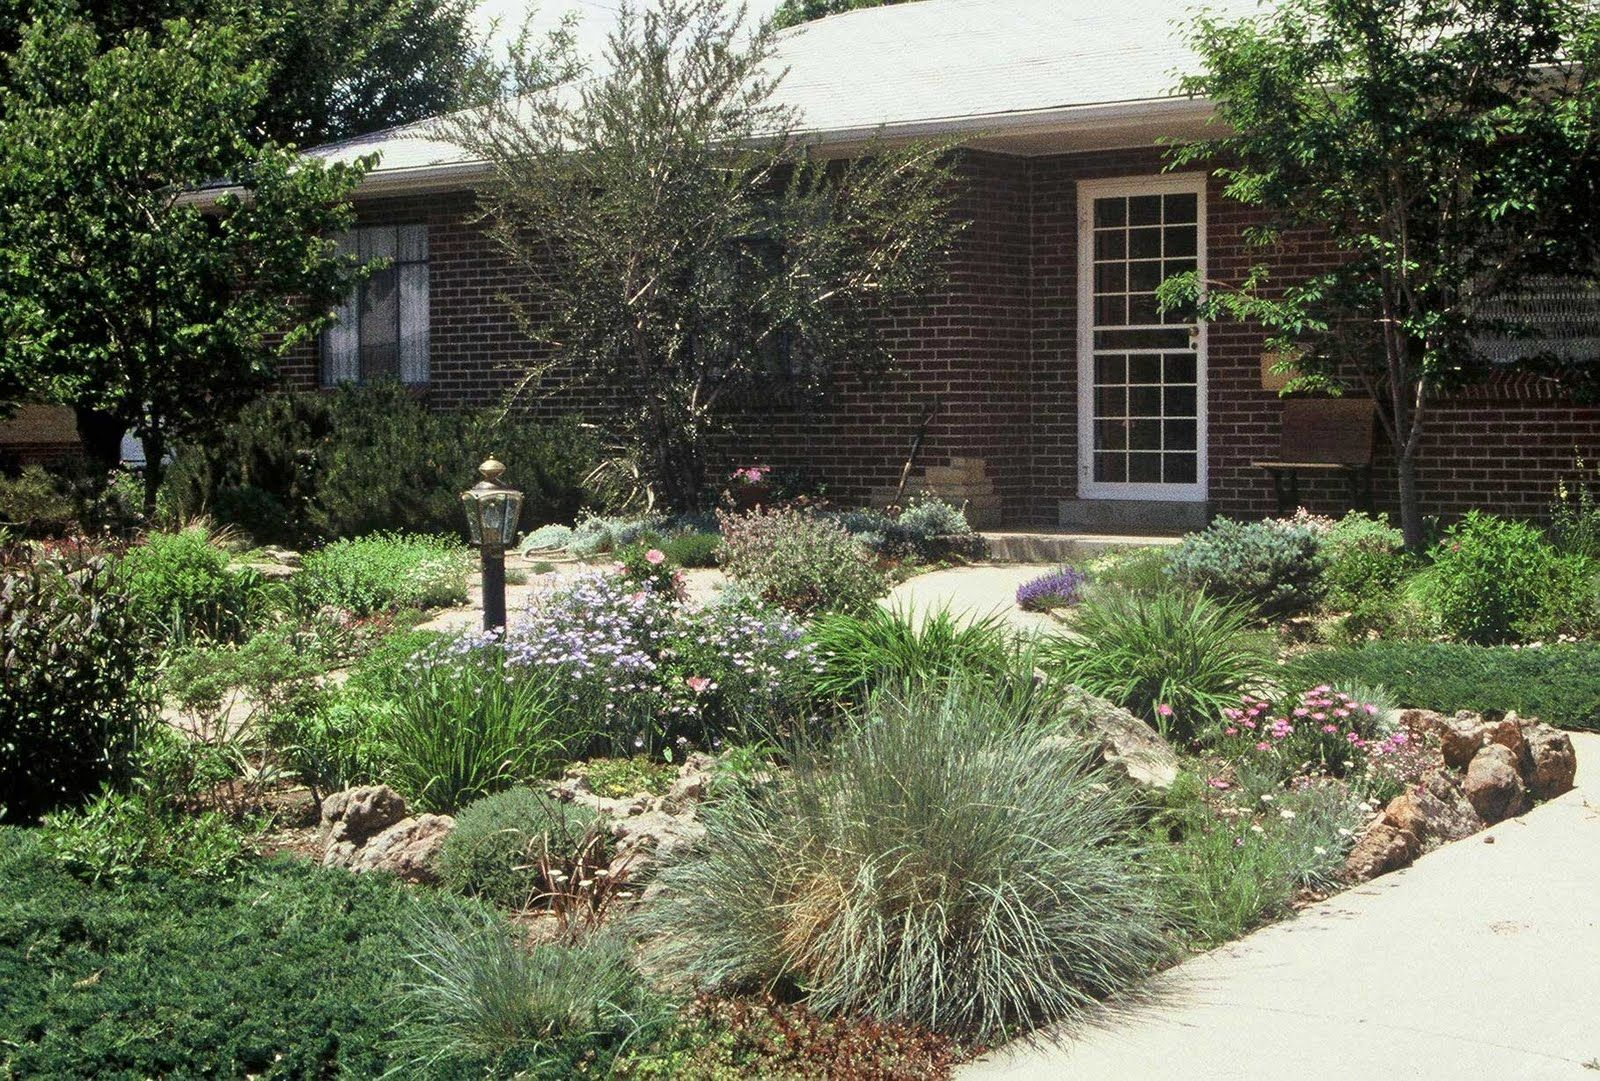 the art garden garden designers roundtable lawn alternatives a shallow front yard is given no mow masterpiece ann frogge redesigned he